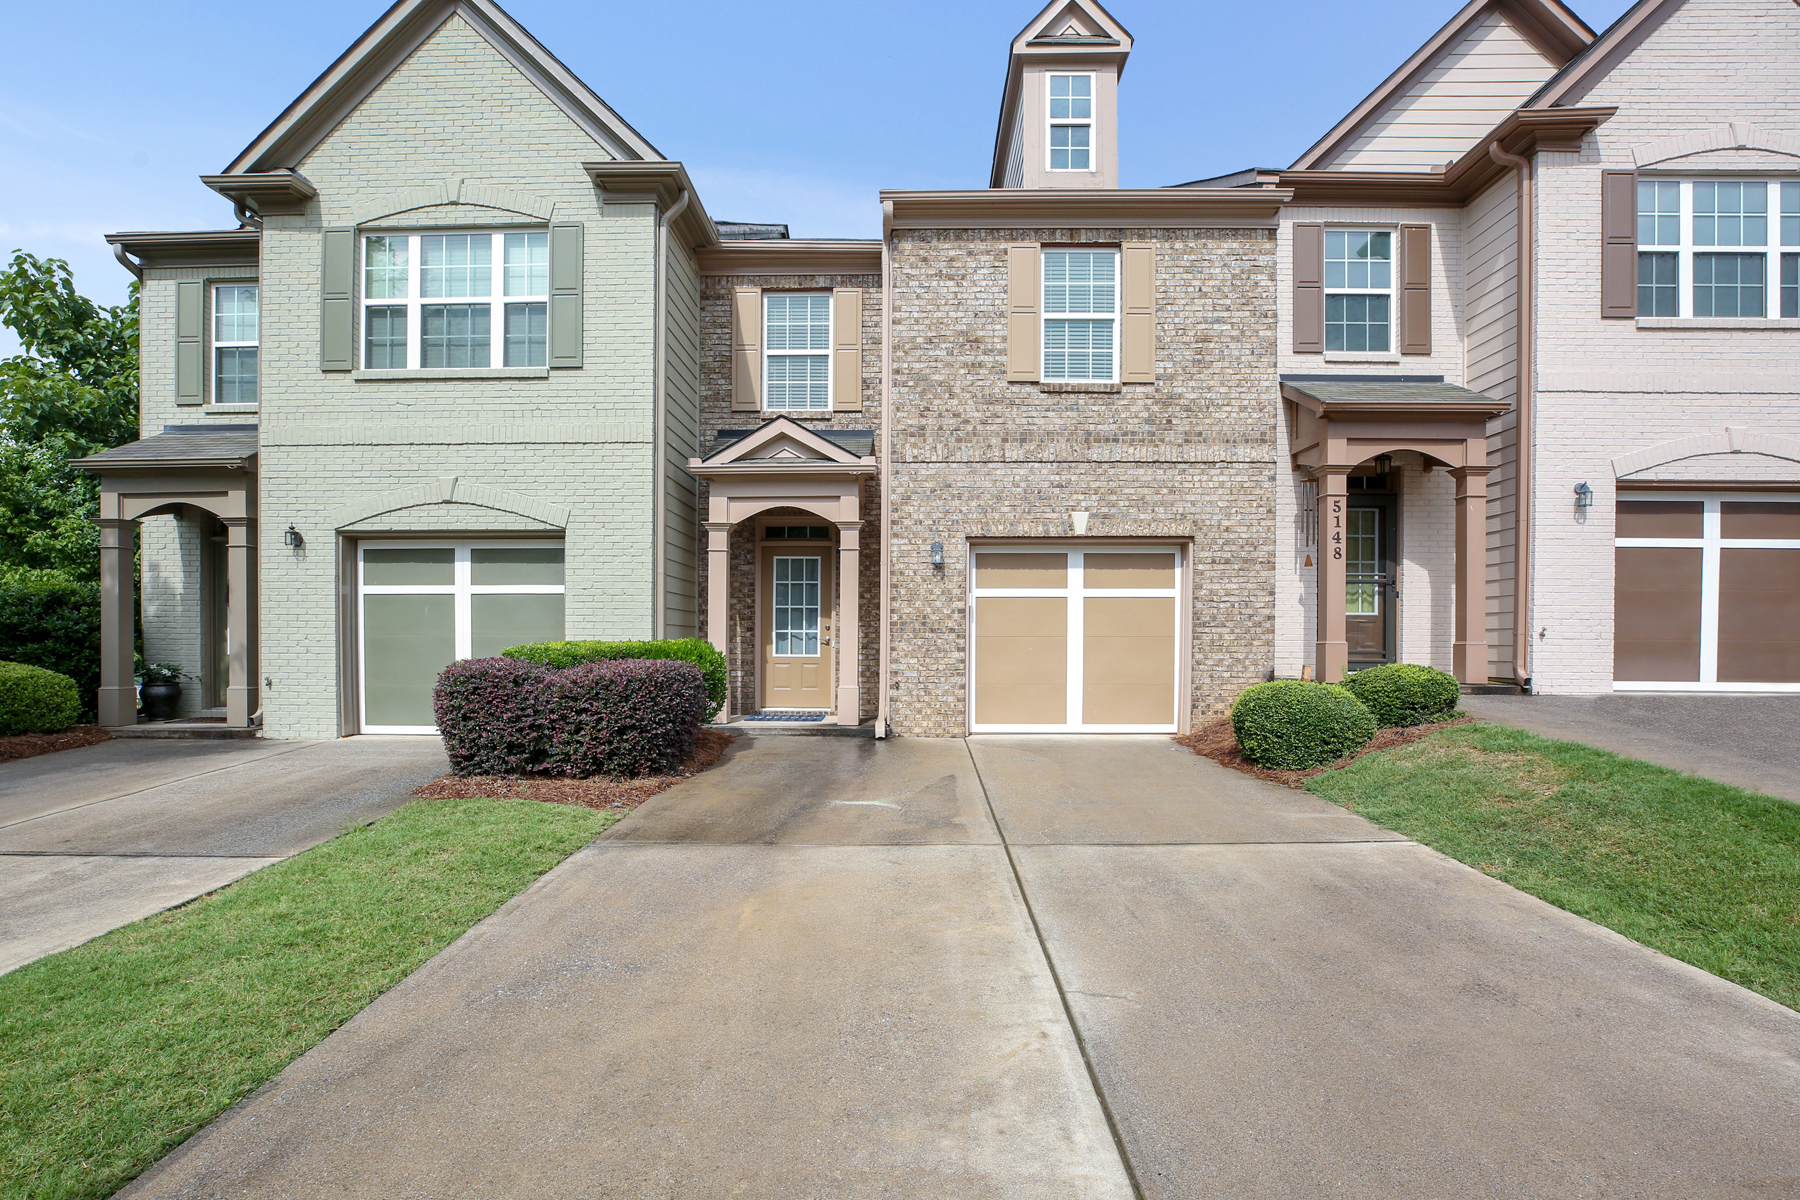 Townhouse for Sale at Quaint Townhouse 5152 Sherwood Way Cumming, Georgia 30040 United States